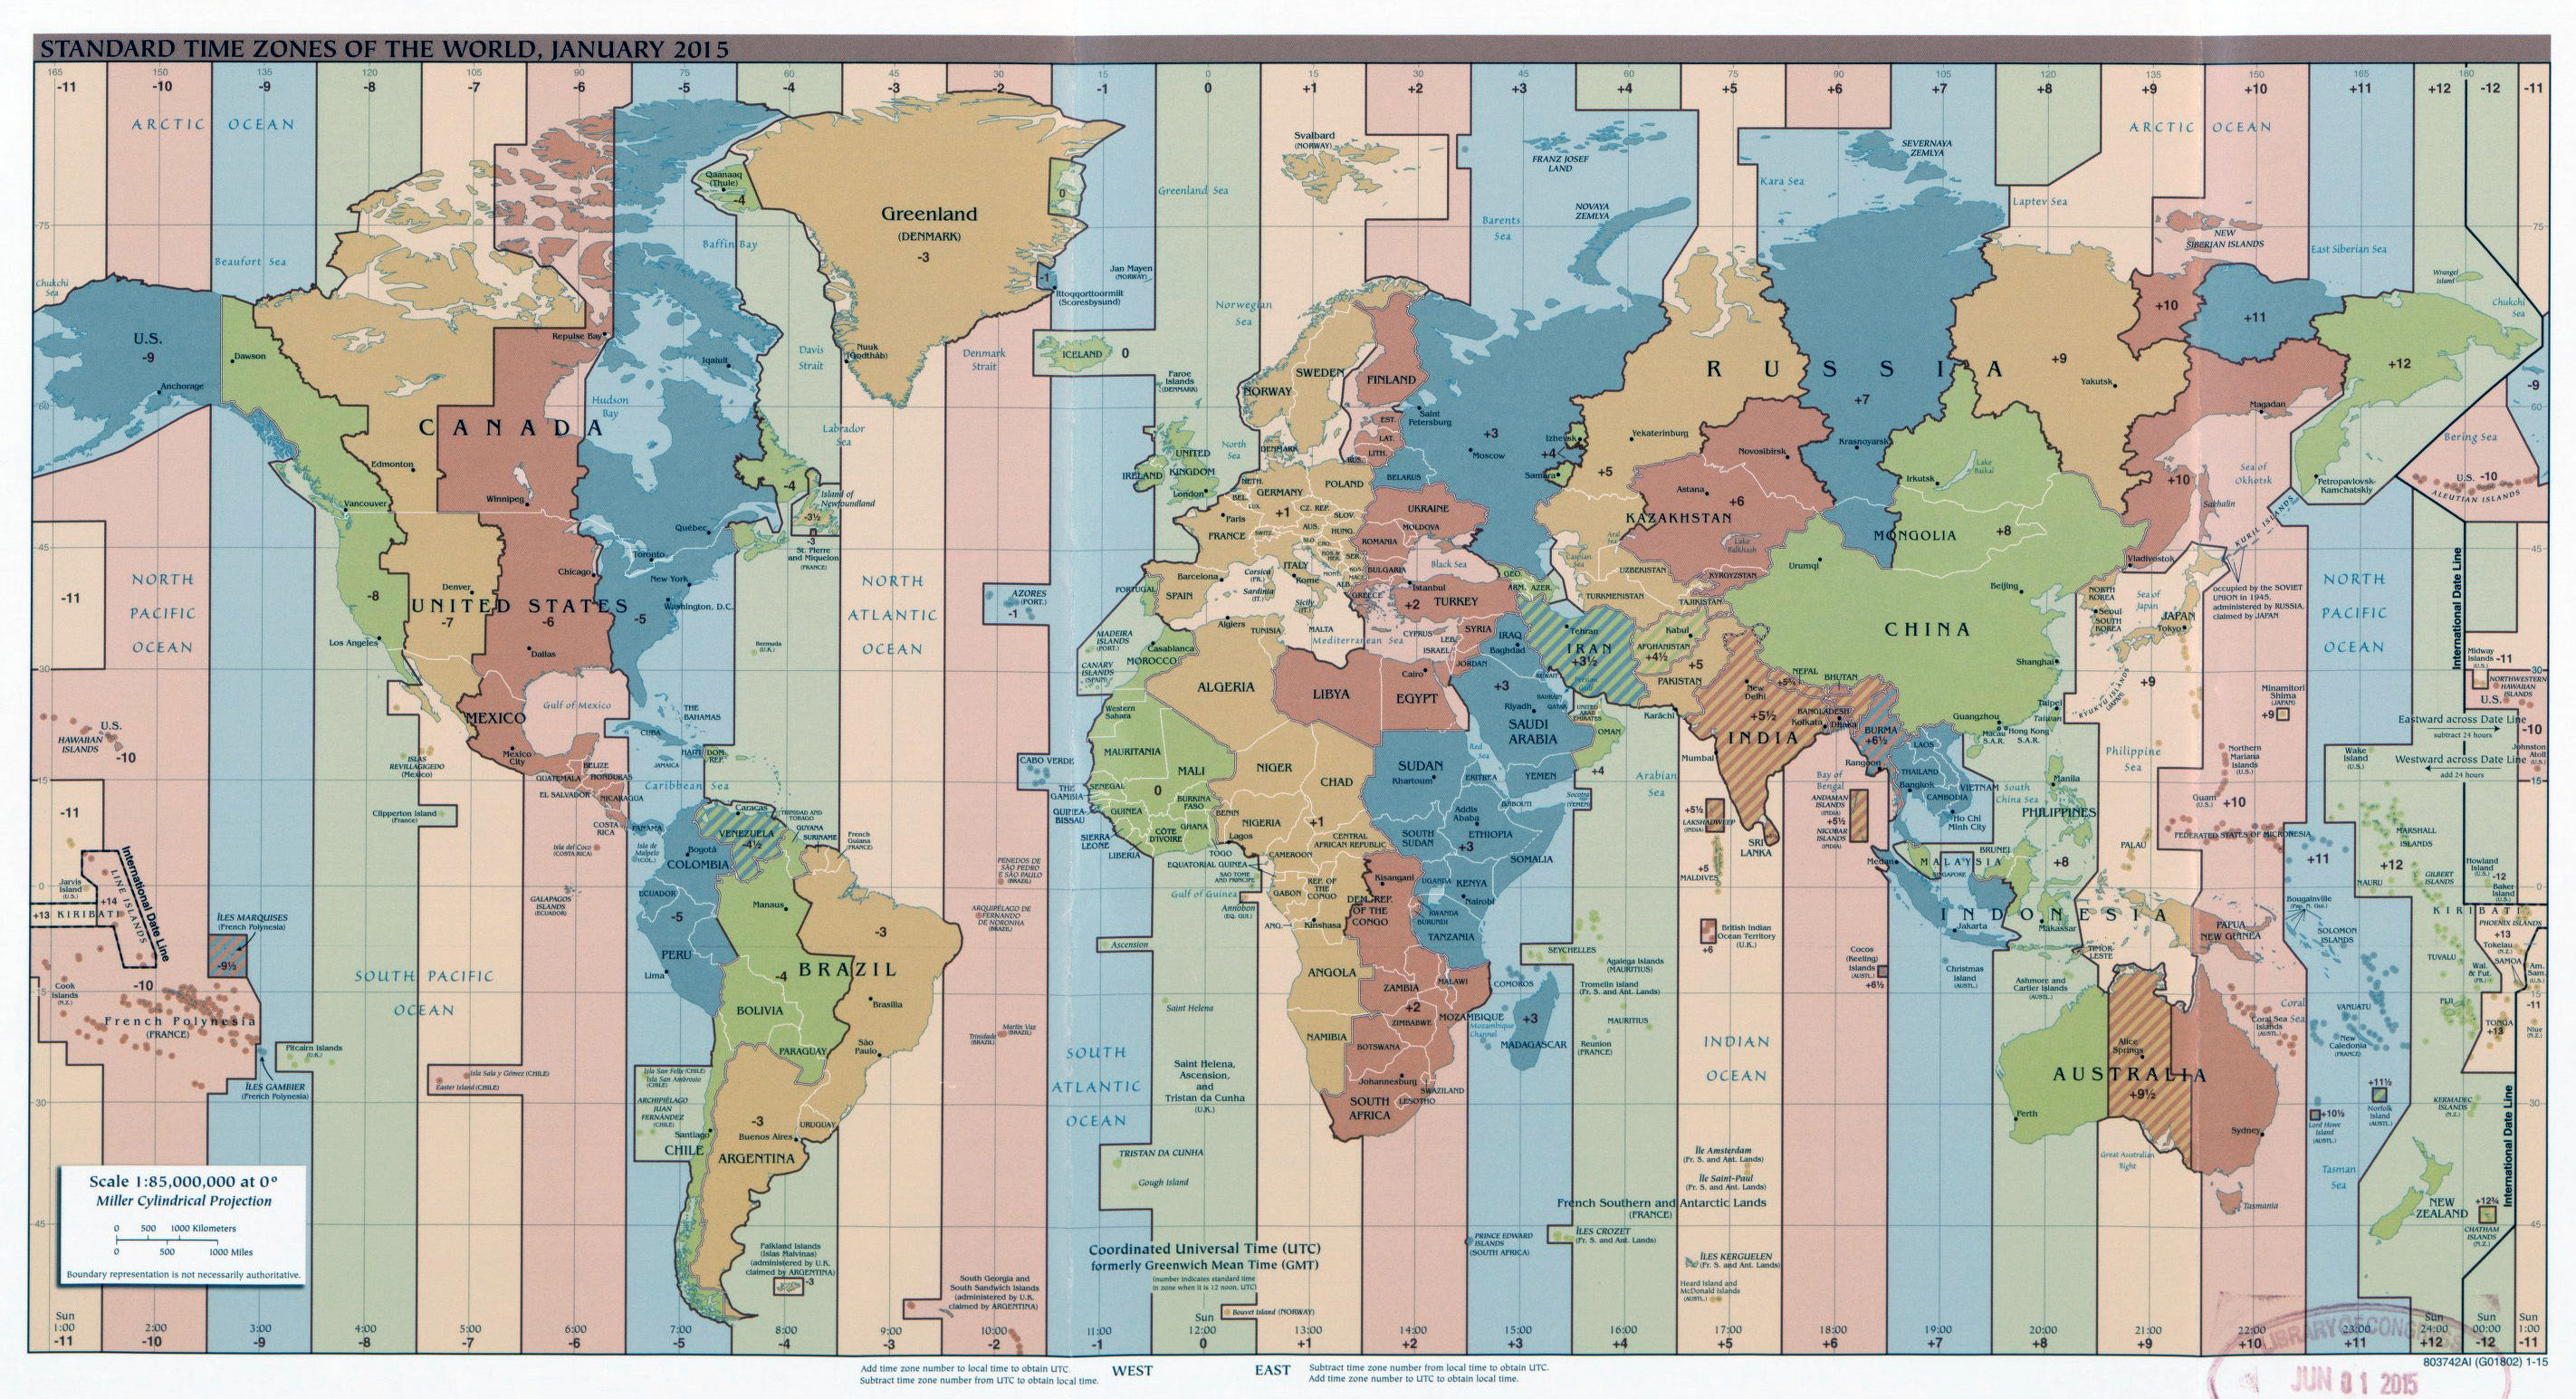 World time zone map time zones of the world map large version new large time zones map of the world vidianicom maps of large world time zone map gumiabroncs